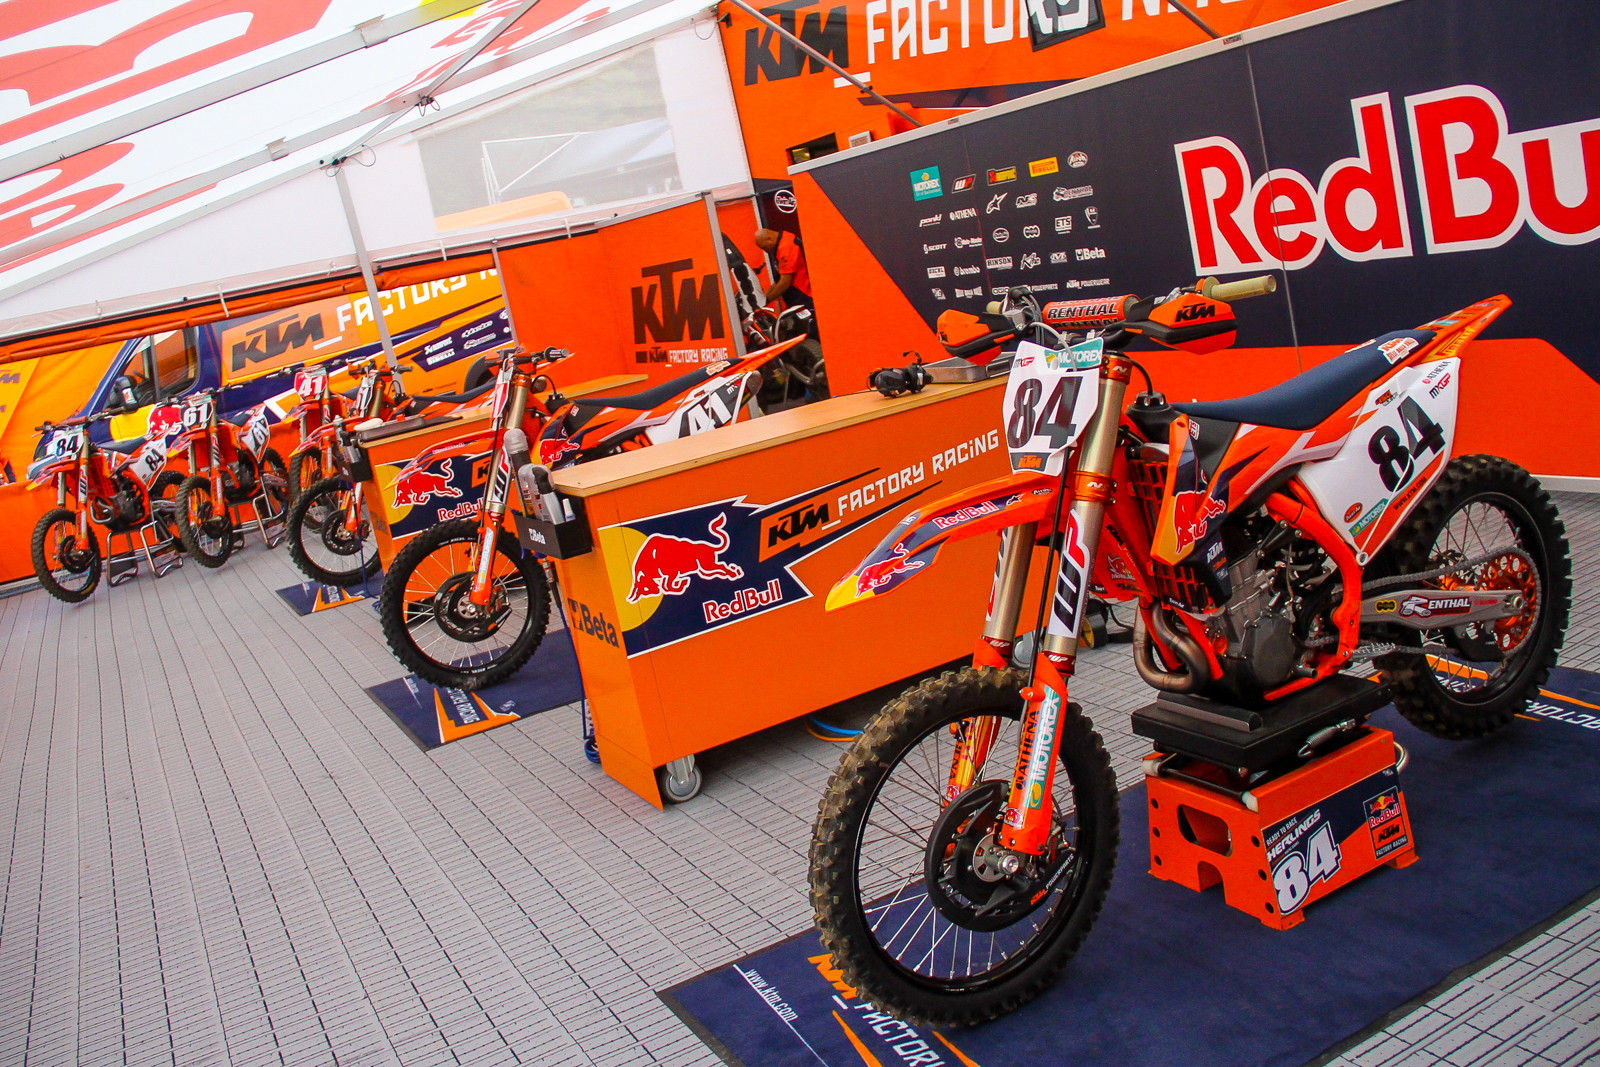 Red Bull KTM - Jeffrey Herlings - Vital MX Pit Bits 2017 MXGP of France - Motocross Pictures - Vital MX & Red Bull KTM - Jeffrey Herlings - Vital MX Pit Bits: 2017 MXGP of ...